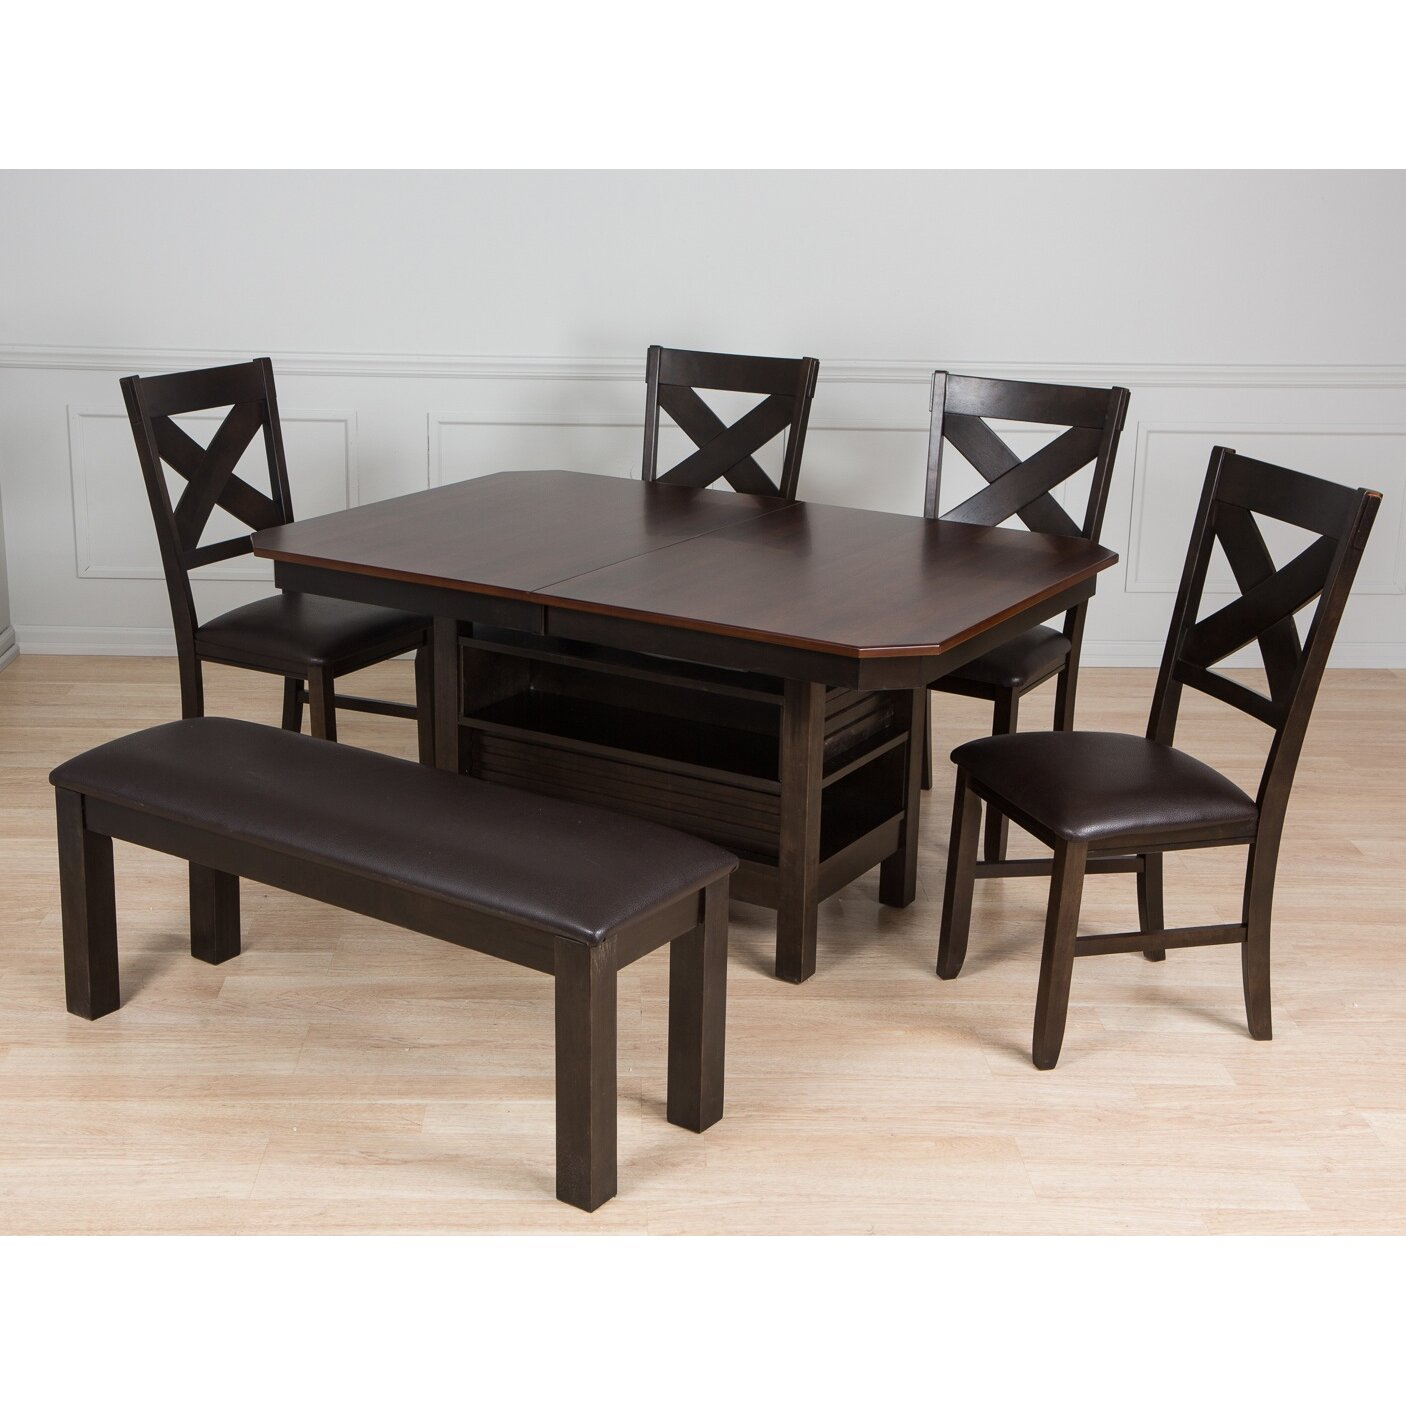 Aw furniture 6 piece dining set for Dining room sets 6 piece